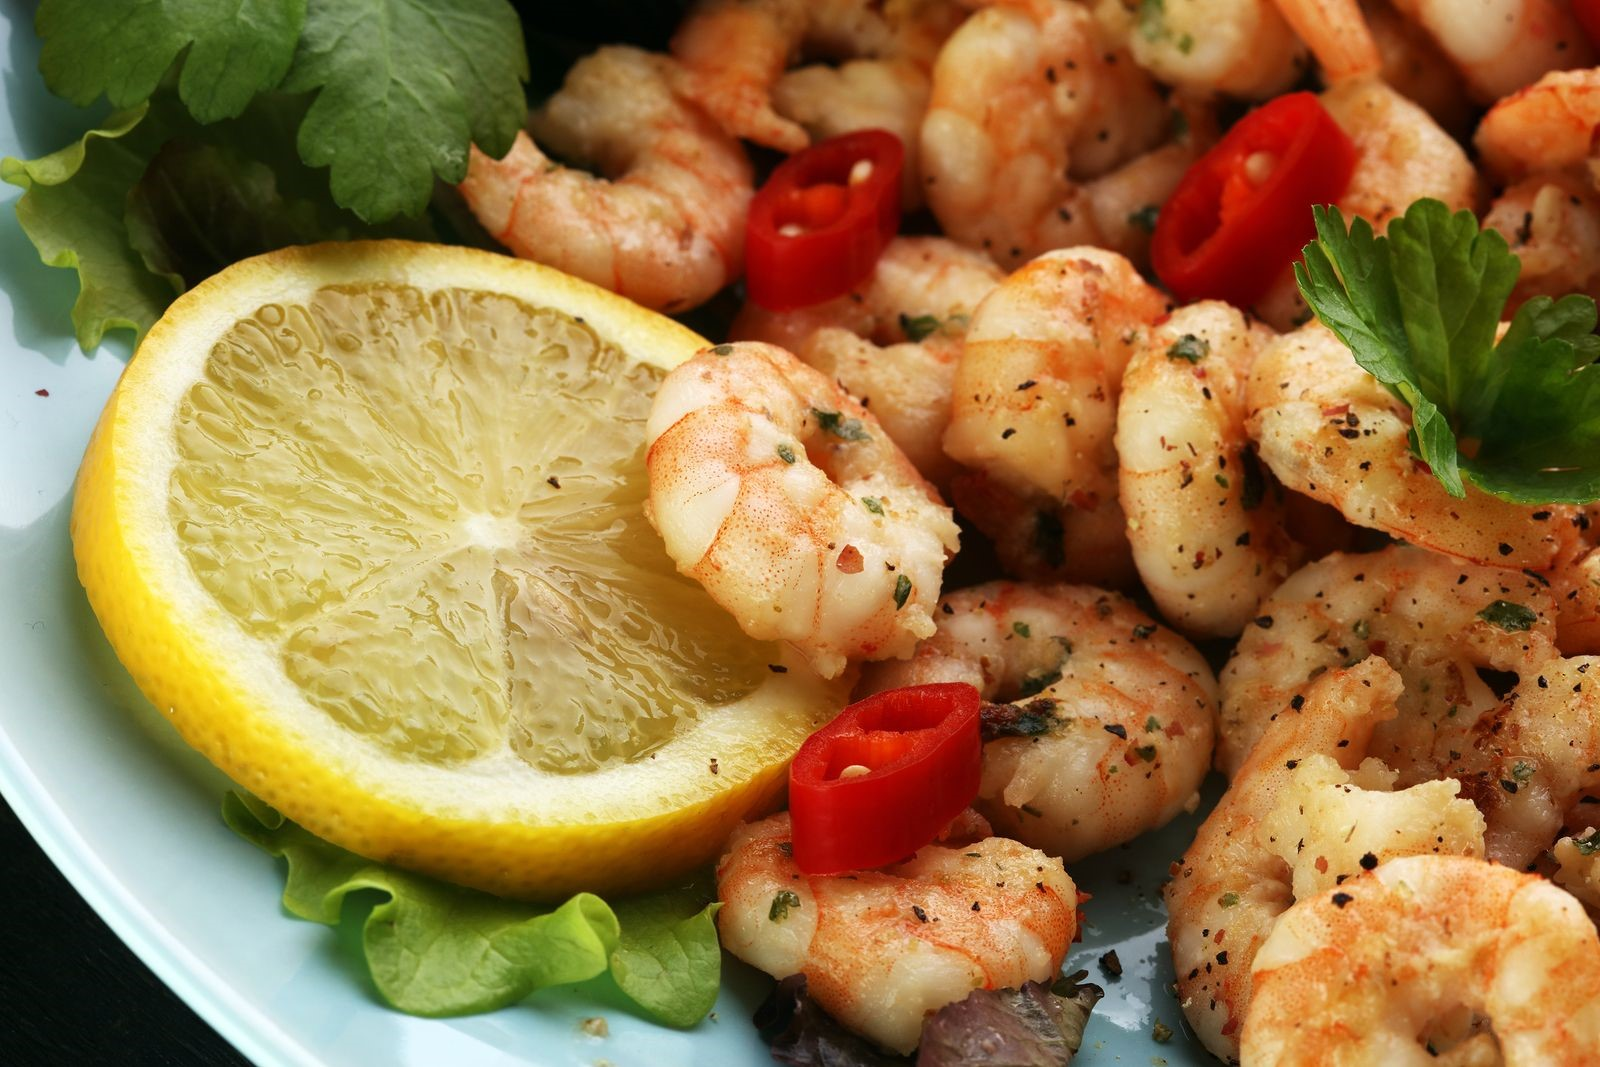 Your Local Cajun Seafood Joint Offers a Fun Experience for the Family